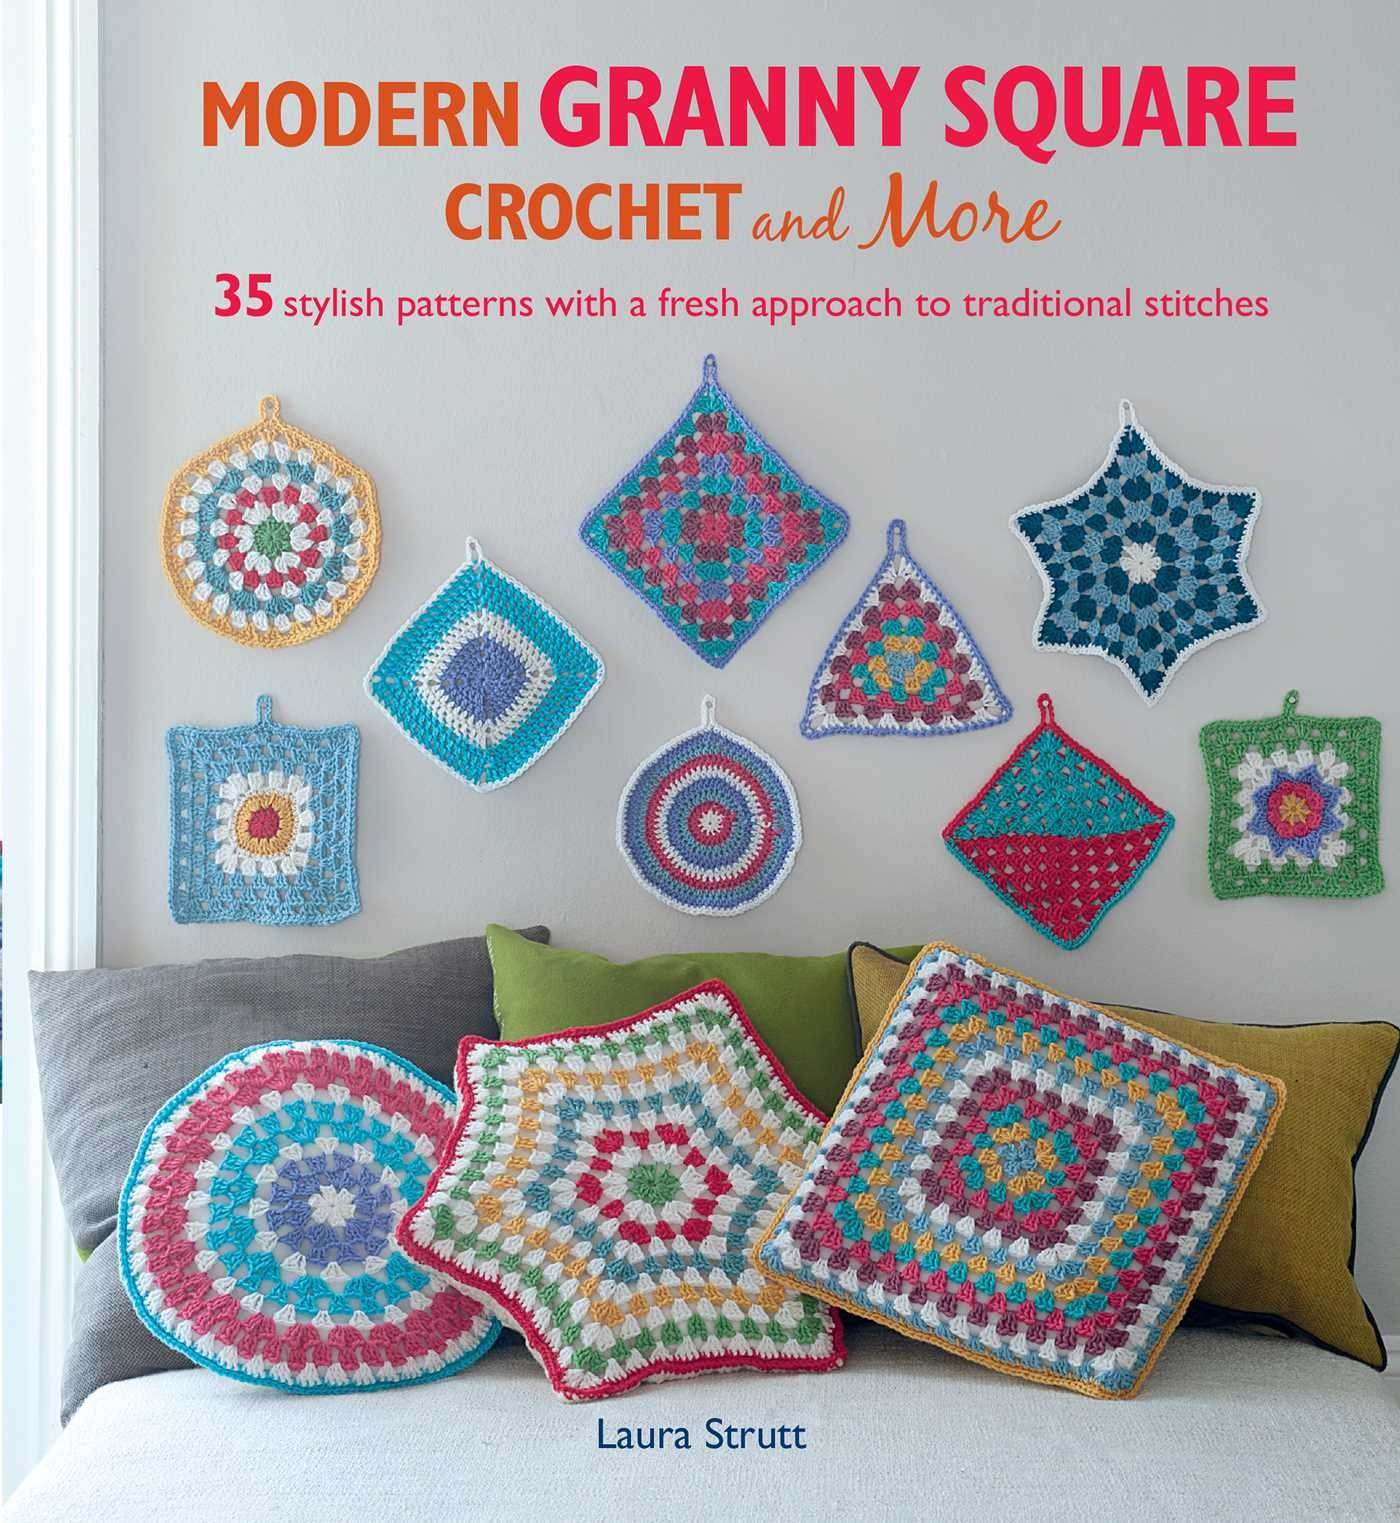 Modern Granny Square Crochet and More: 35 stylish patterns